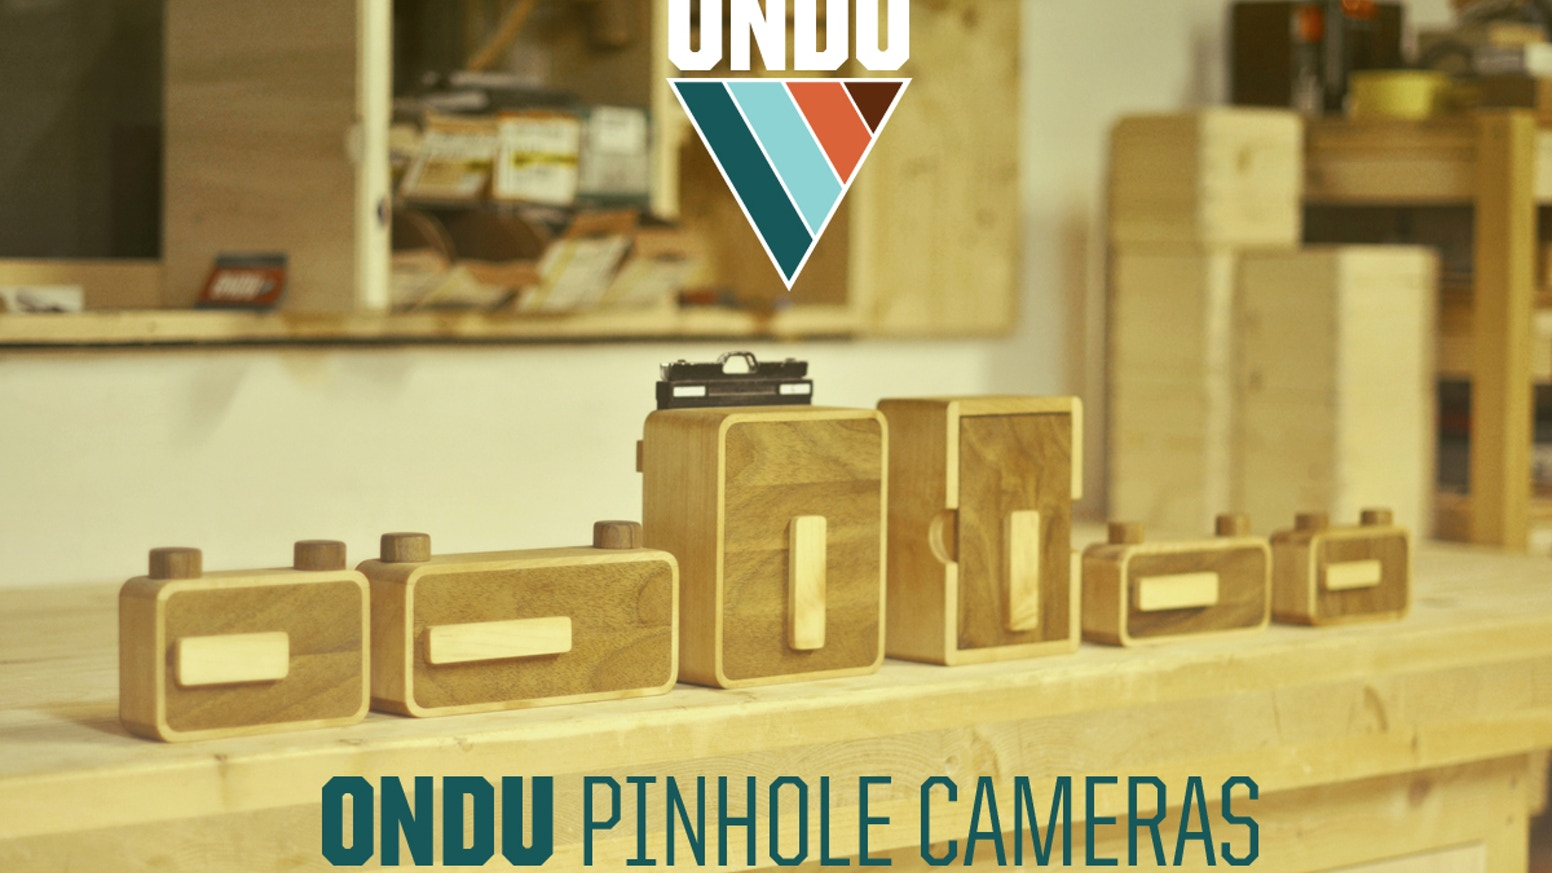 The first durable and simple to use pinhole camera that can be passed on for generations!